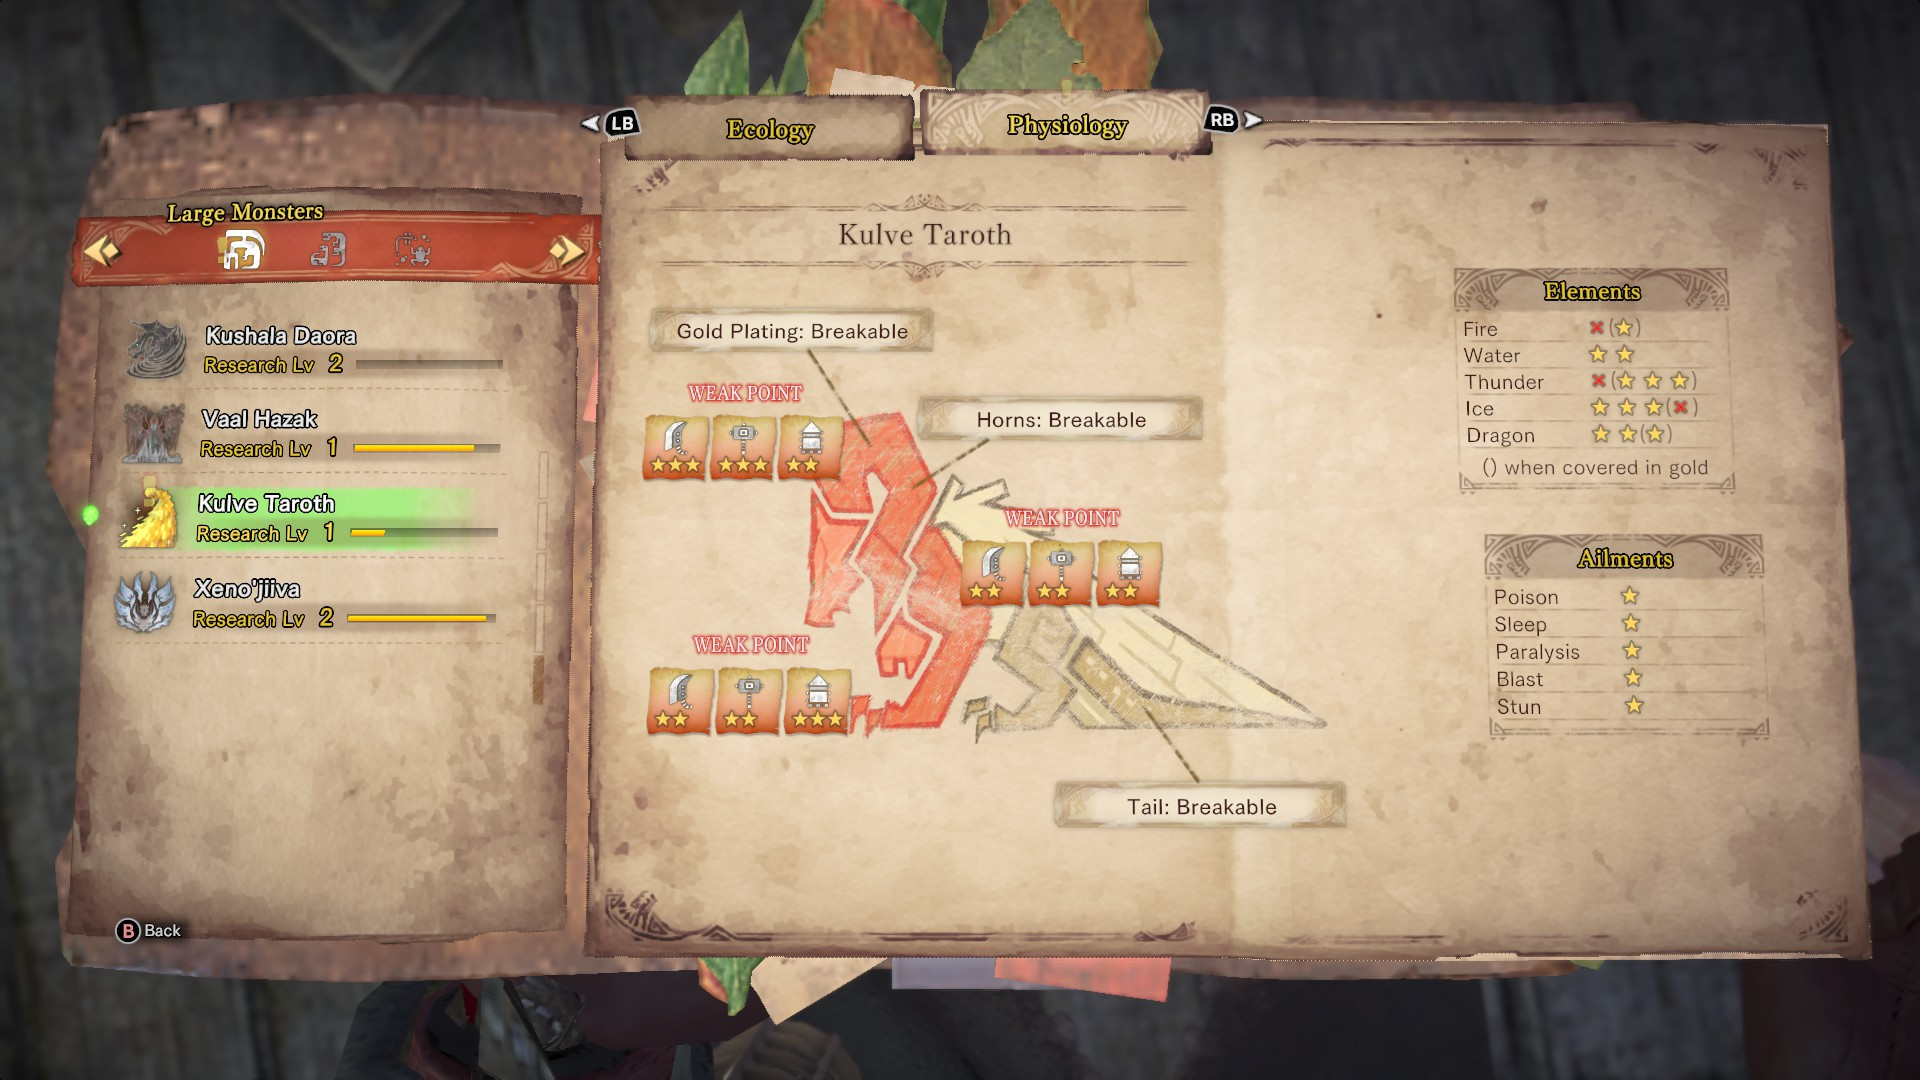 Kulve Taroth's entry in the monster field guide.